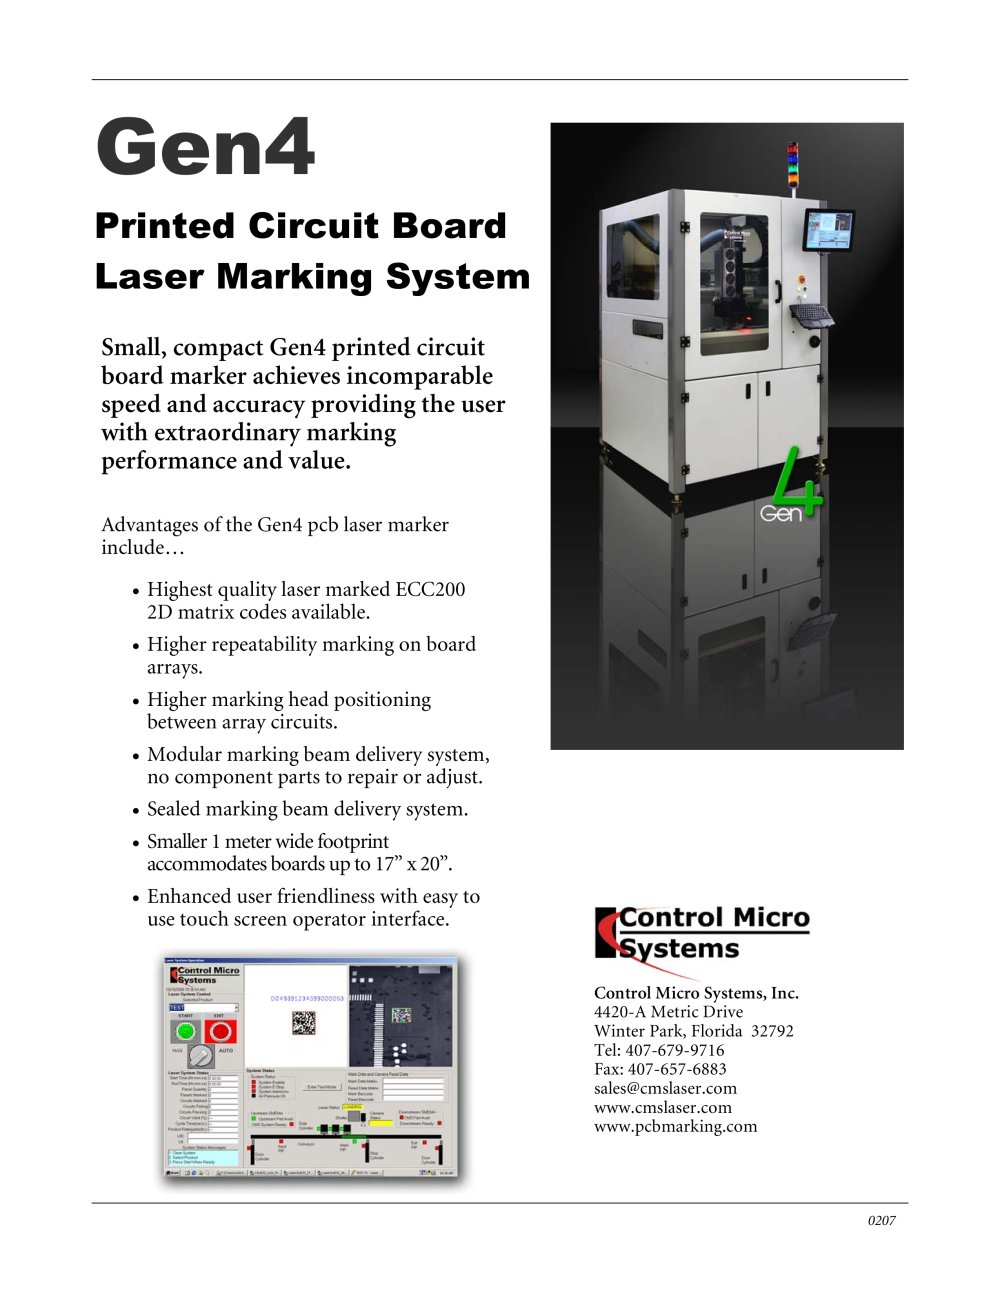 Printed Circuit Board Laser Marking System Control Micro Systems Boards Pcb Using The Cutter 1 Pages